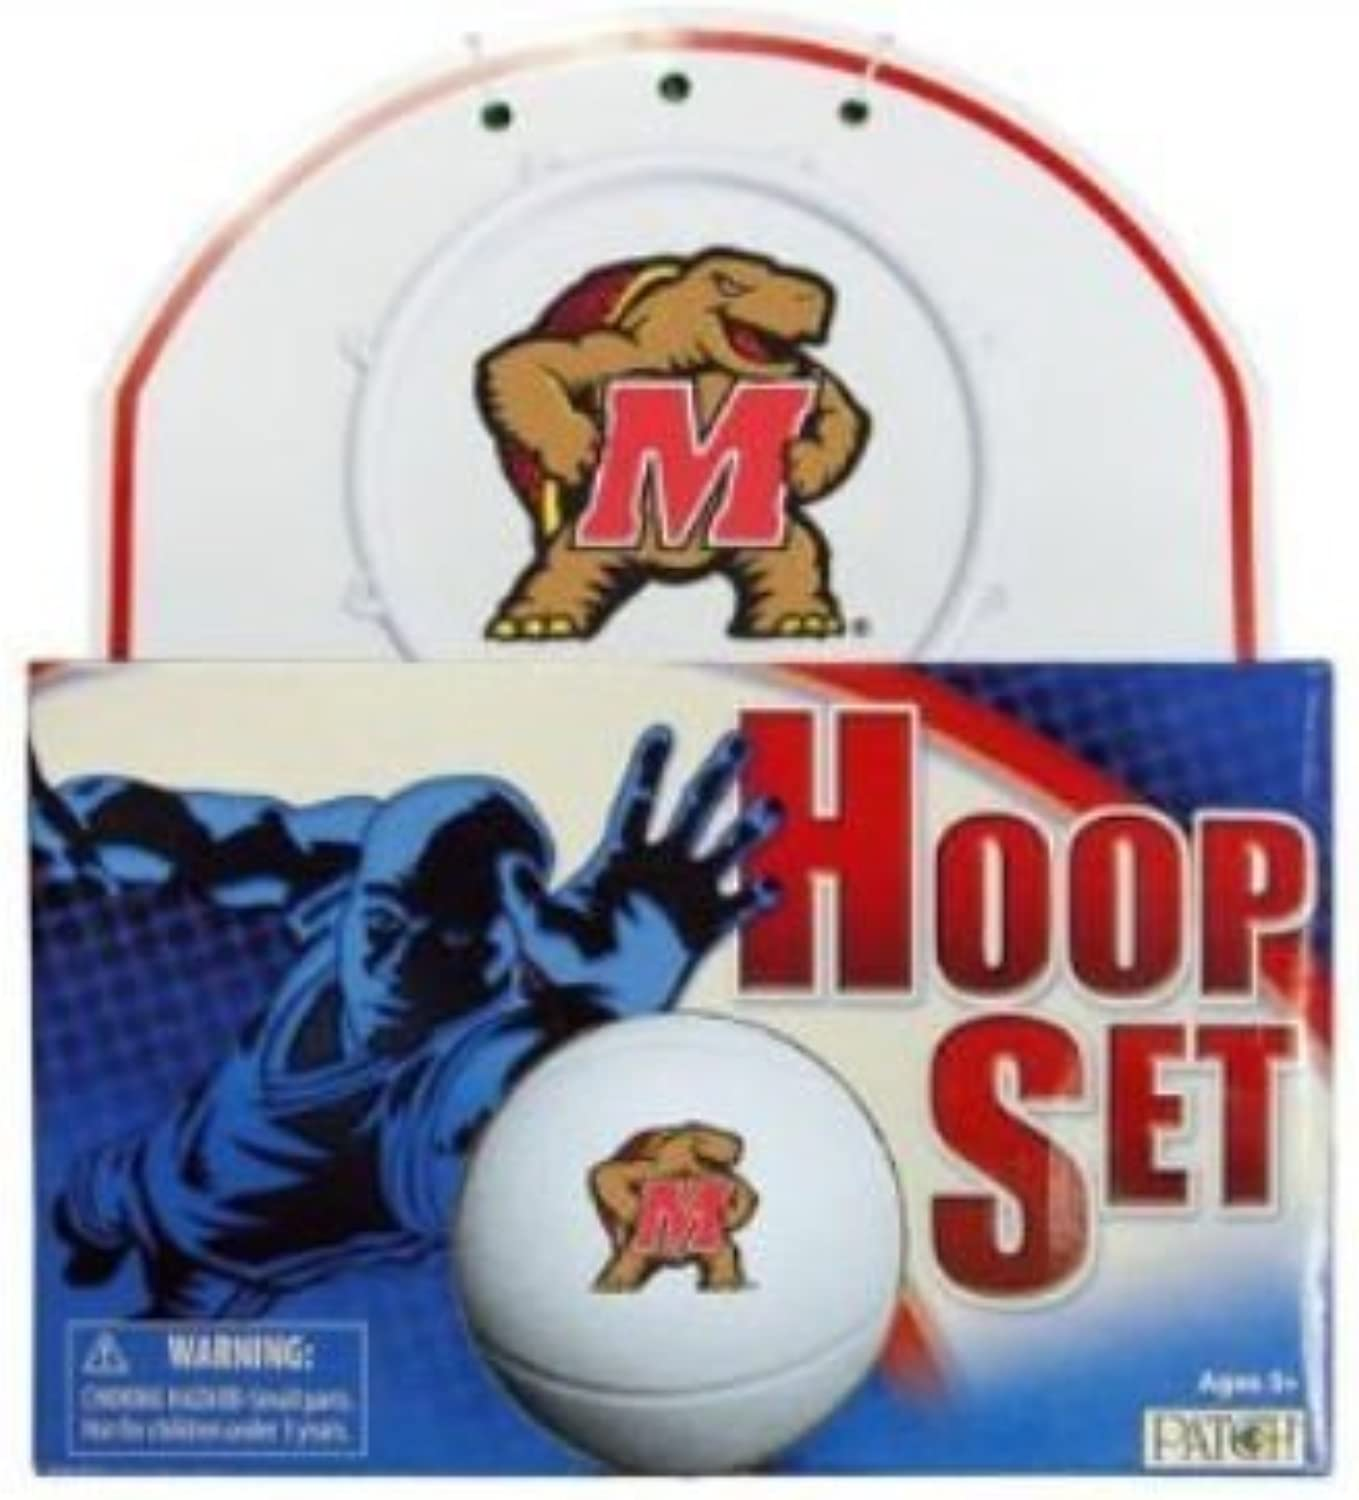 Hoop Set Maryland Game by Patch Products Inc.